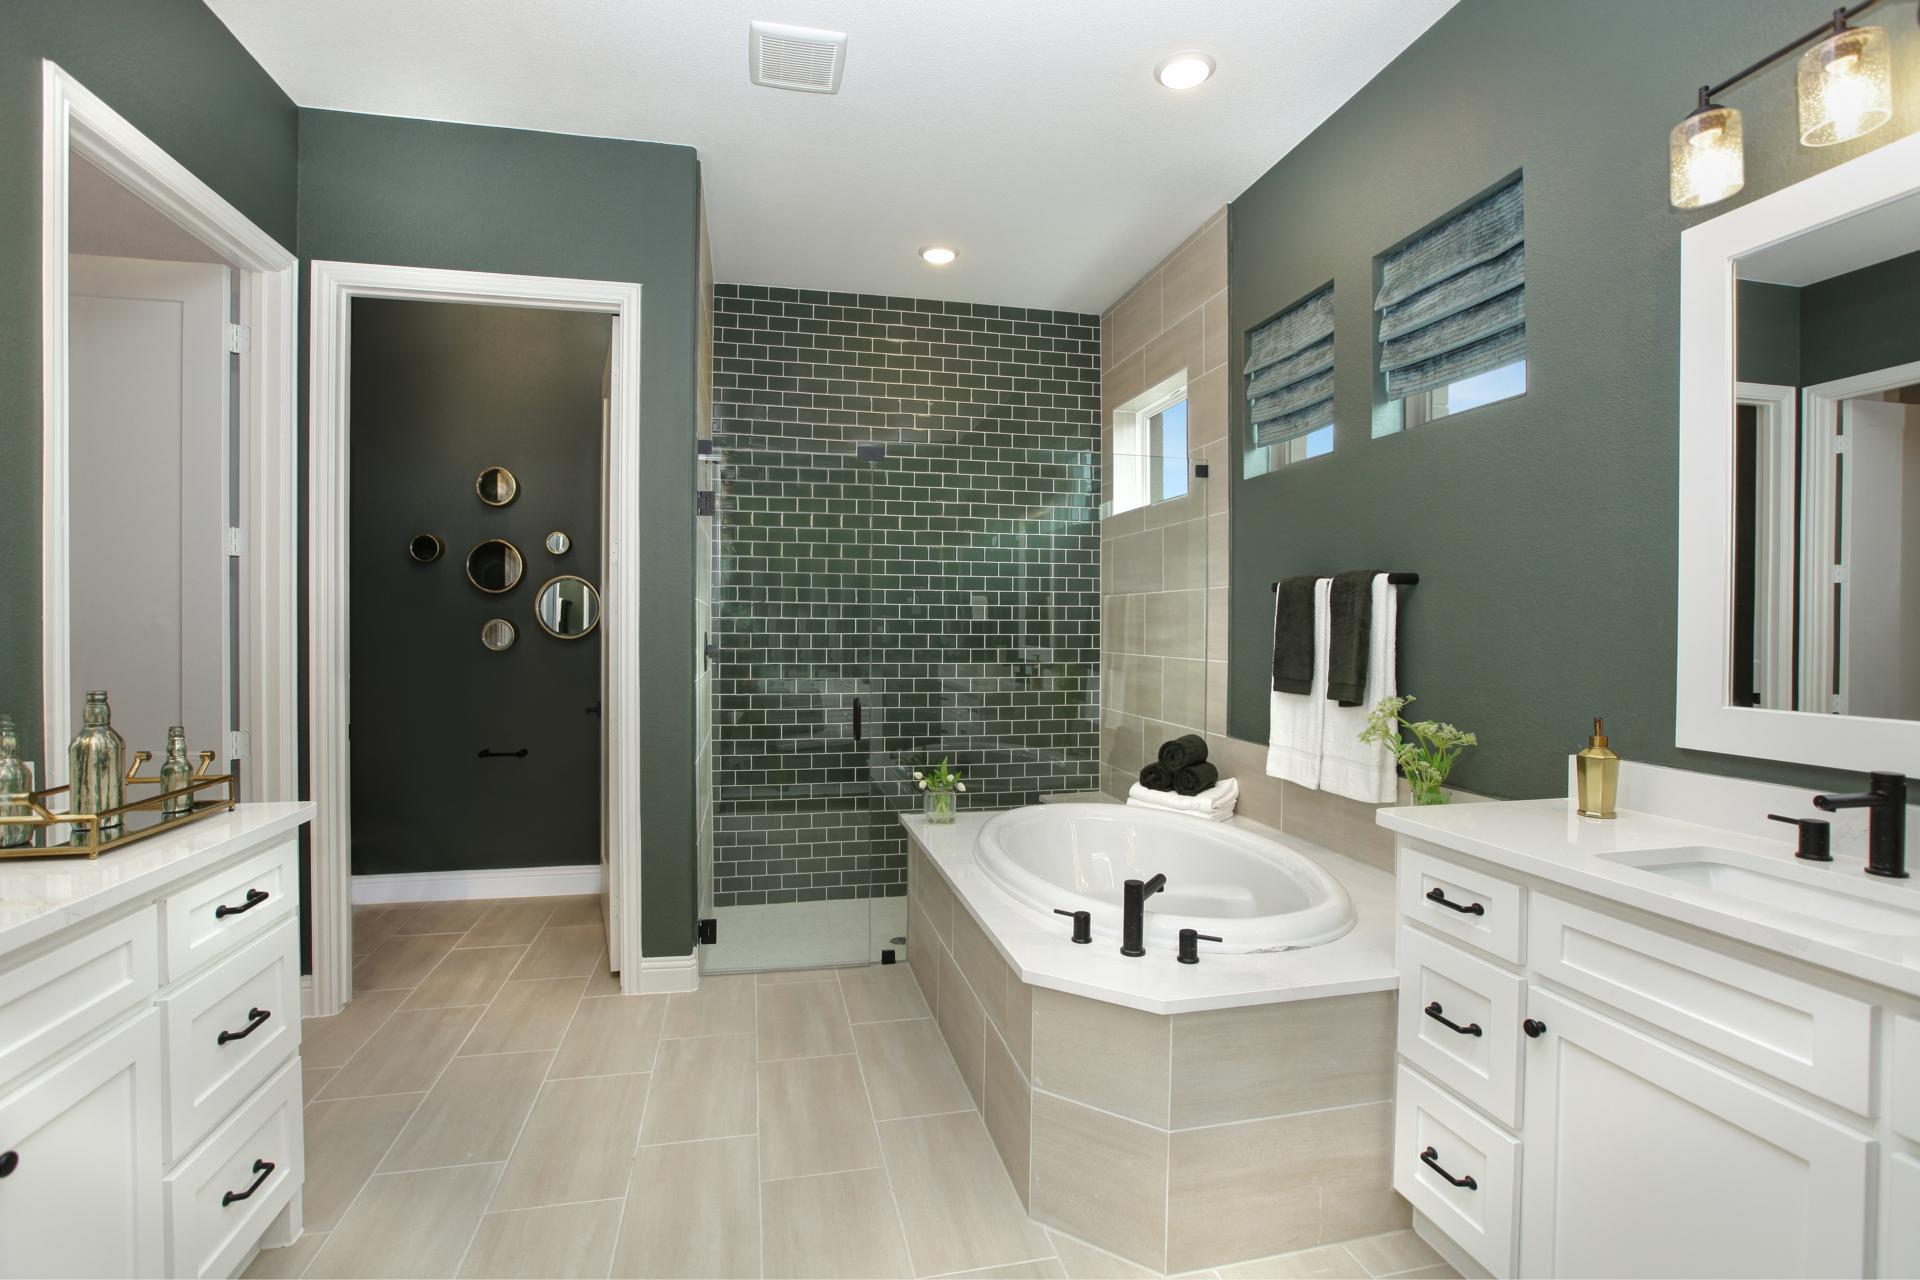 Bathroom featured in the Brynlee By Drees Custom Homes in Austin, TX